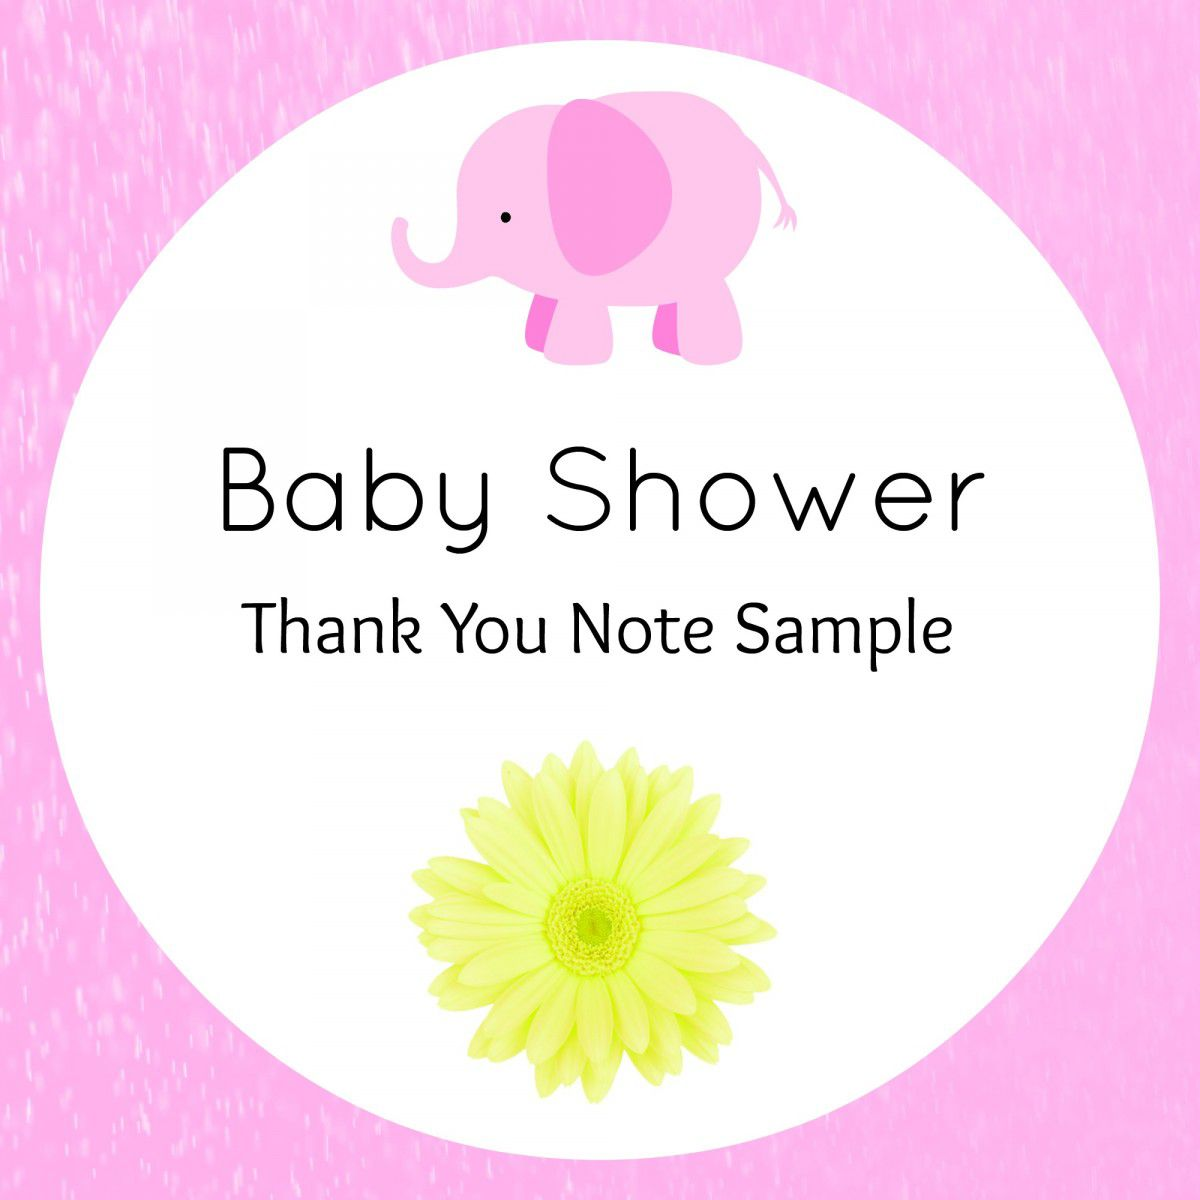 005 Sensational Thank You Note Wording Baby Shower Highest Clarity  For Hosting CardFull